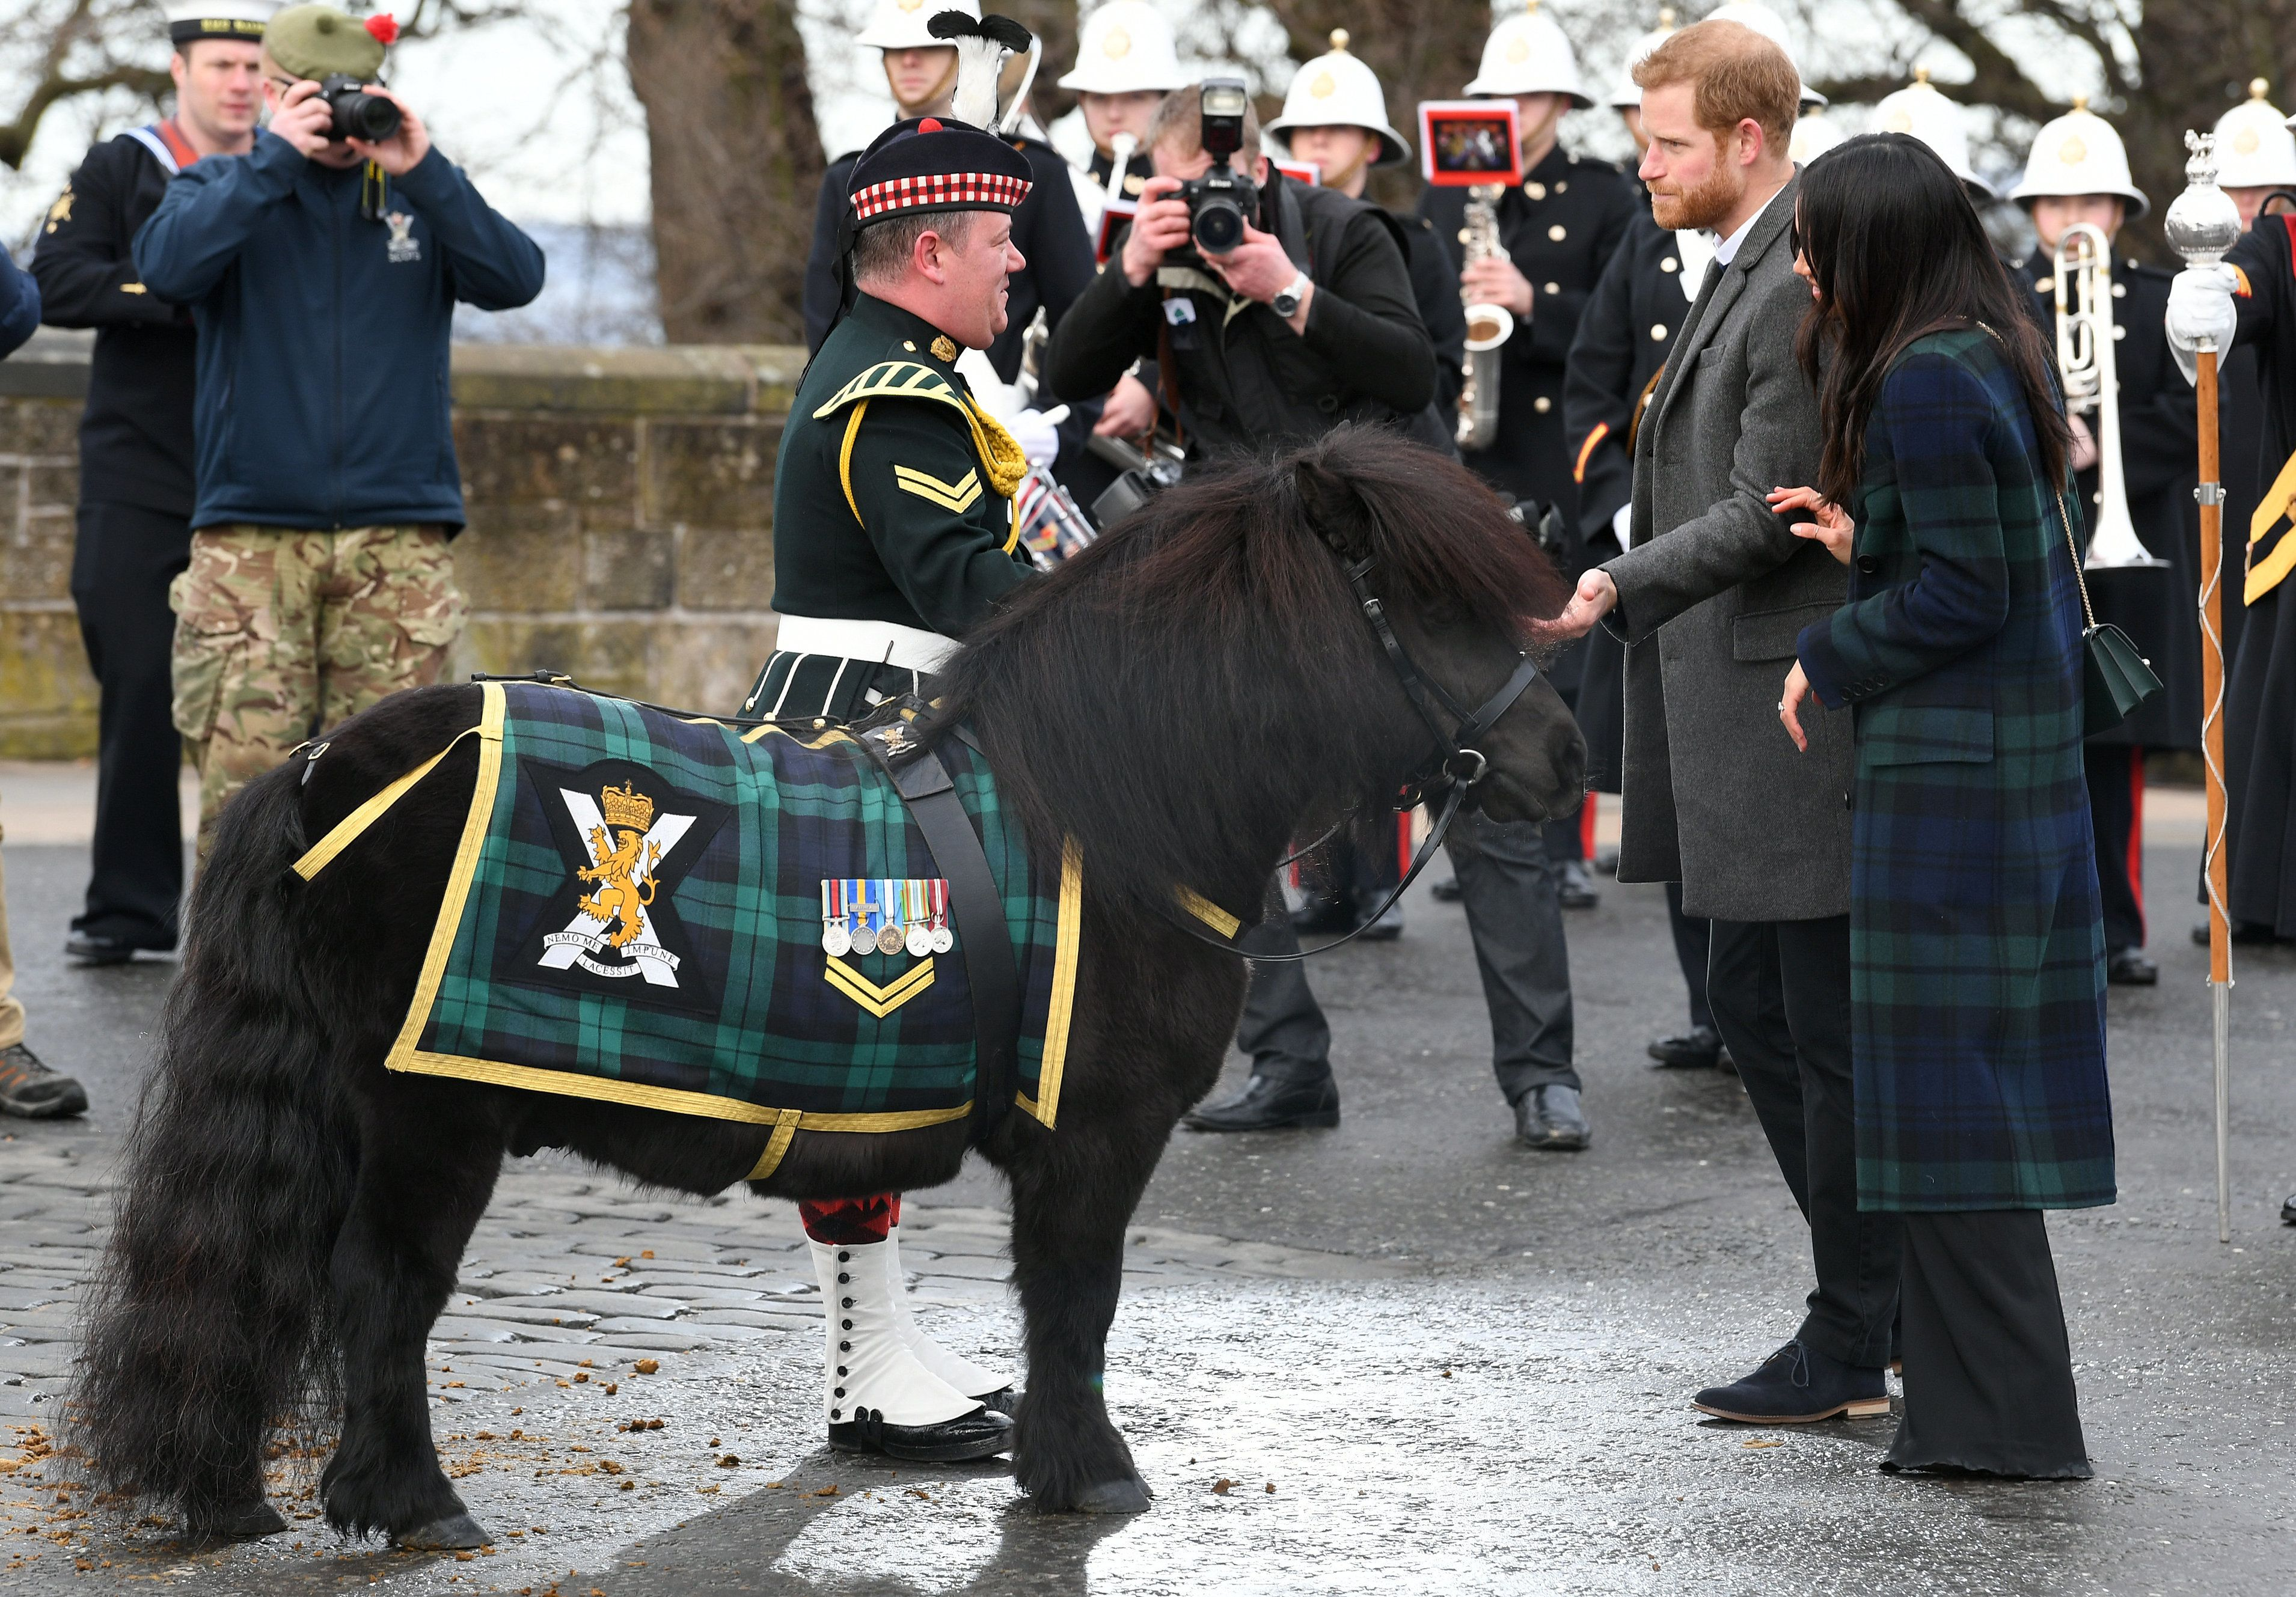 GALLERY: Prince Harry and Meghan Markle visit Scottish capital